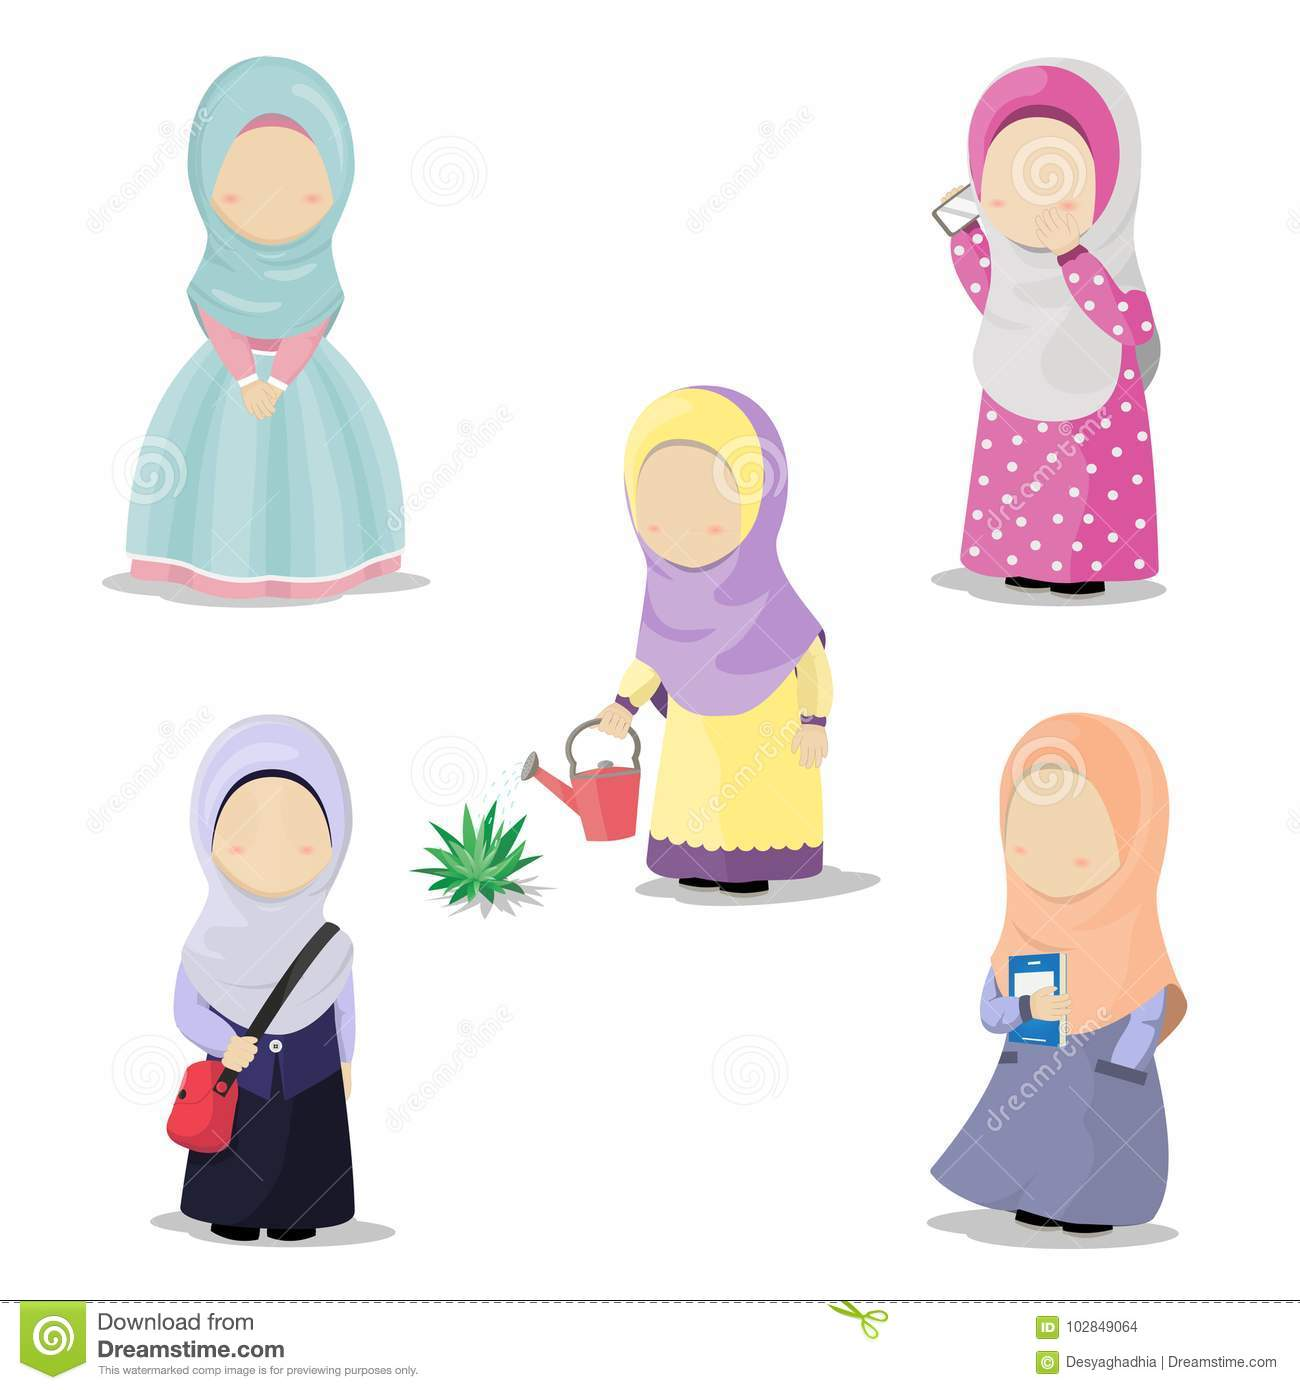 Illustration of five little cute girls with hijab doing daily activities make a phone call watering a plant go to school carrying a book and also girl